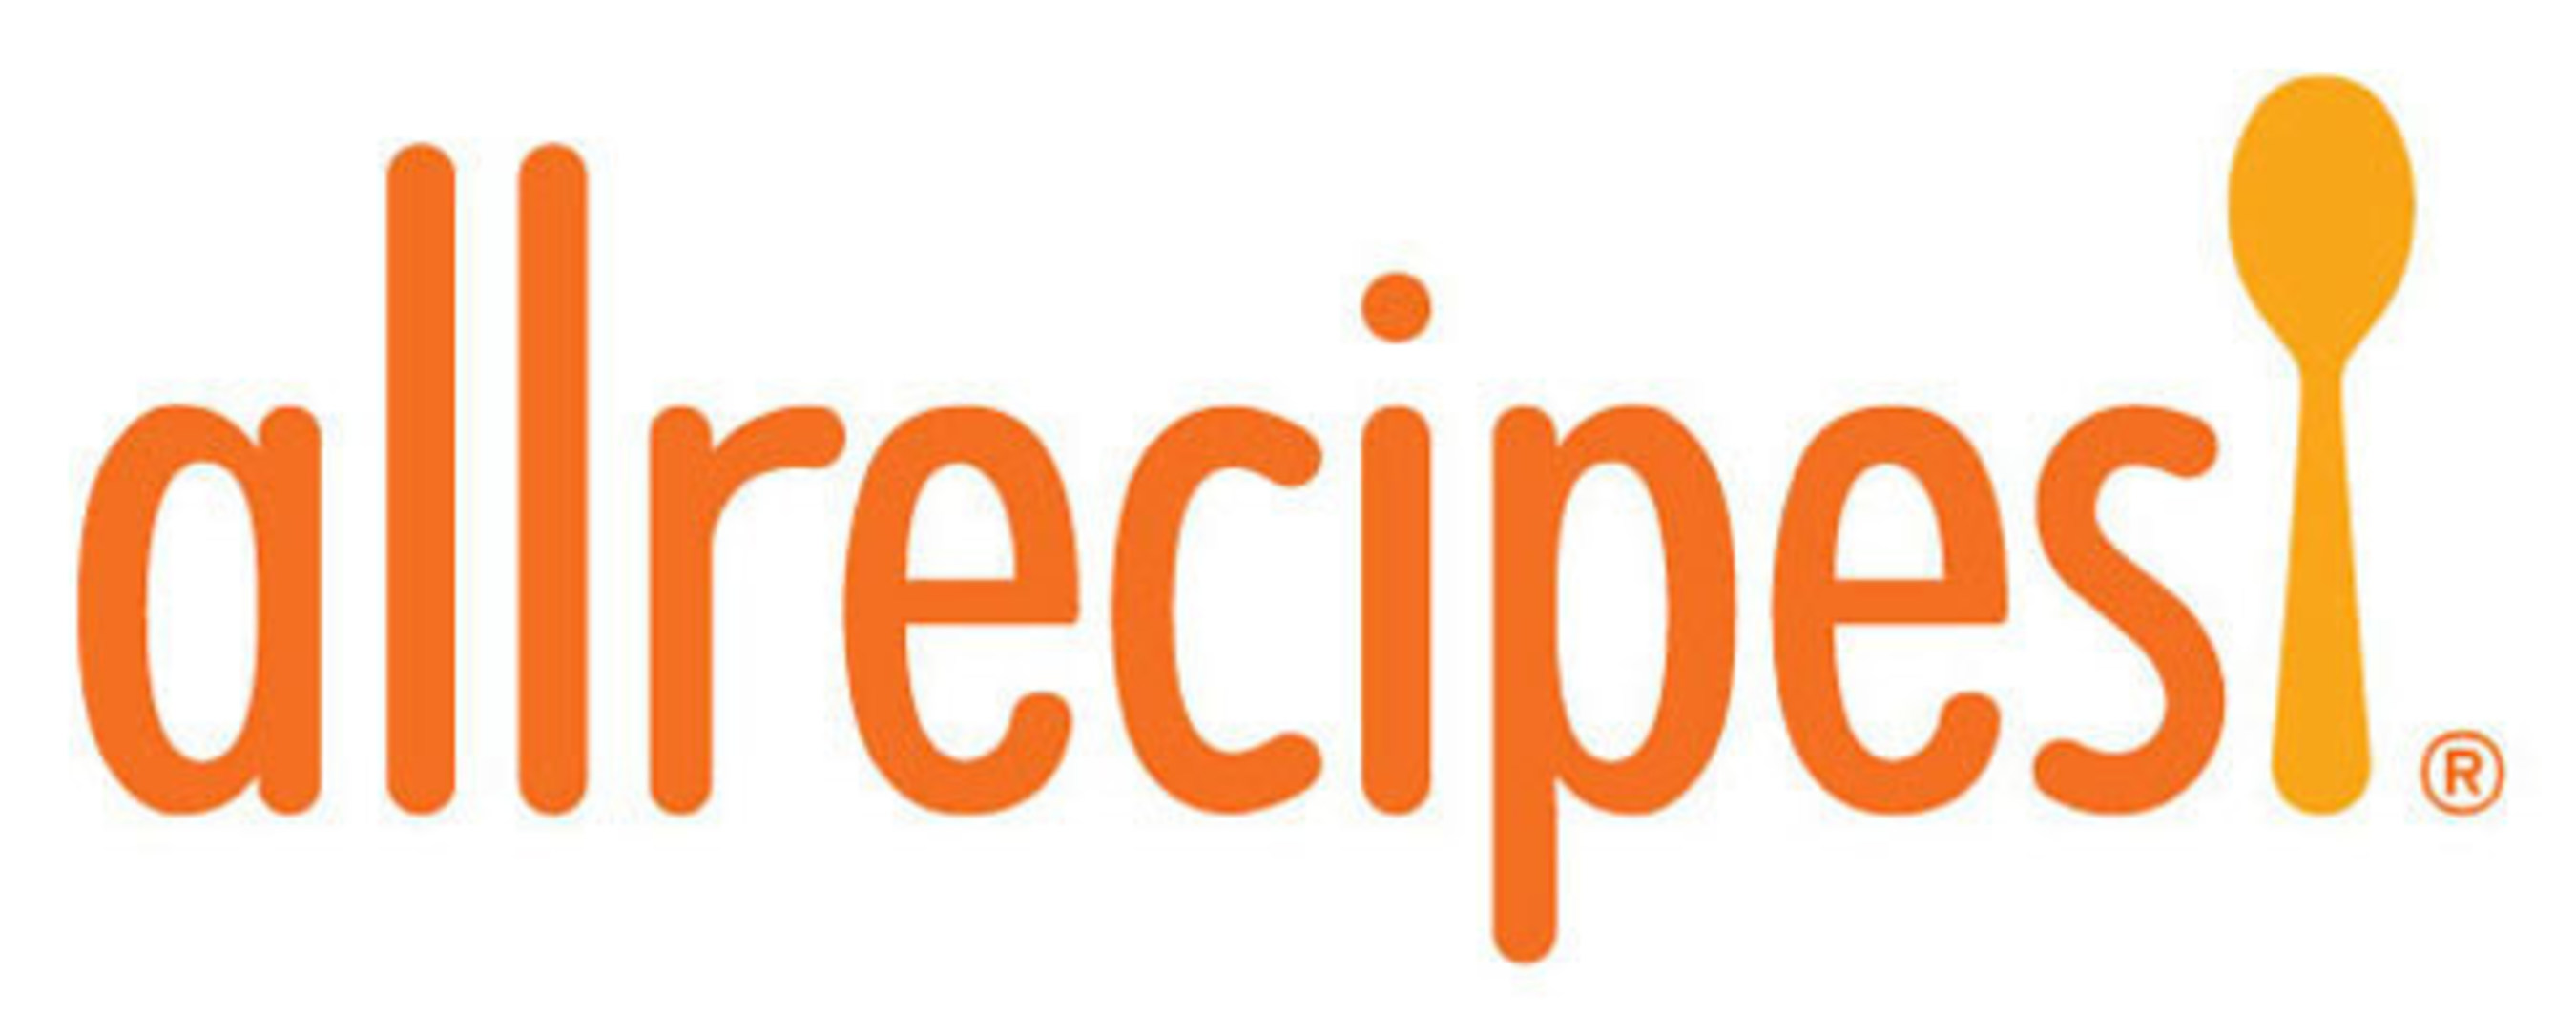 Allrecipes, the world's largest food-focused social network with more than 1.3 billion visits annually